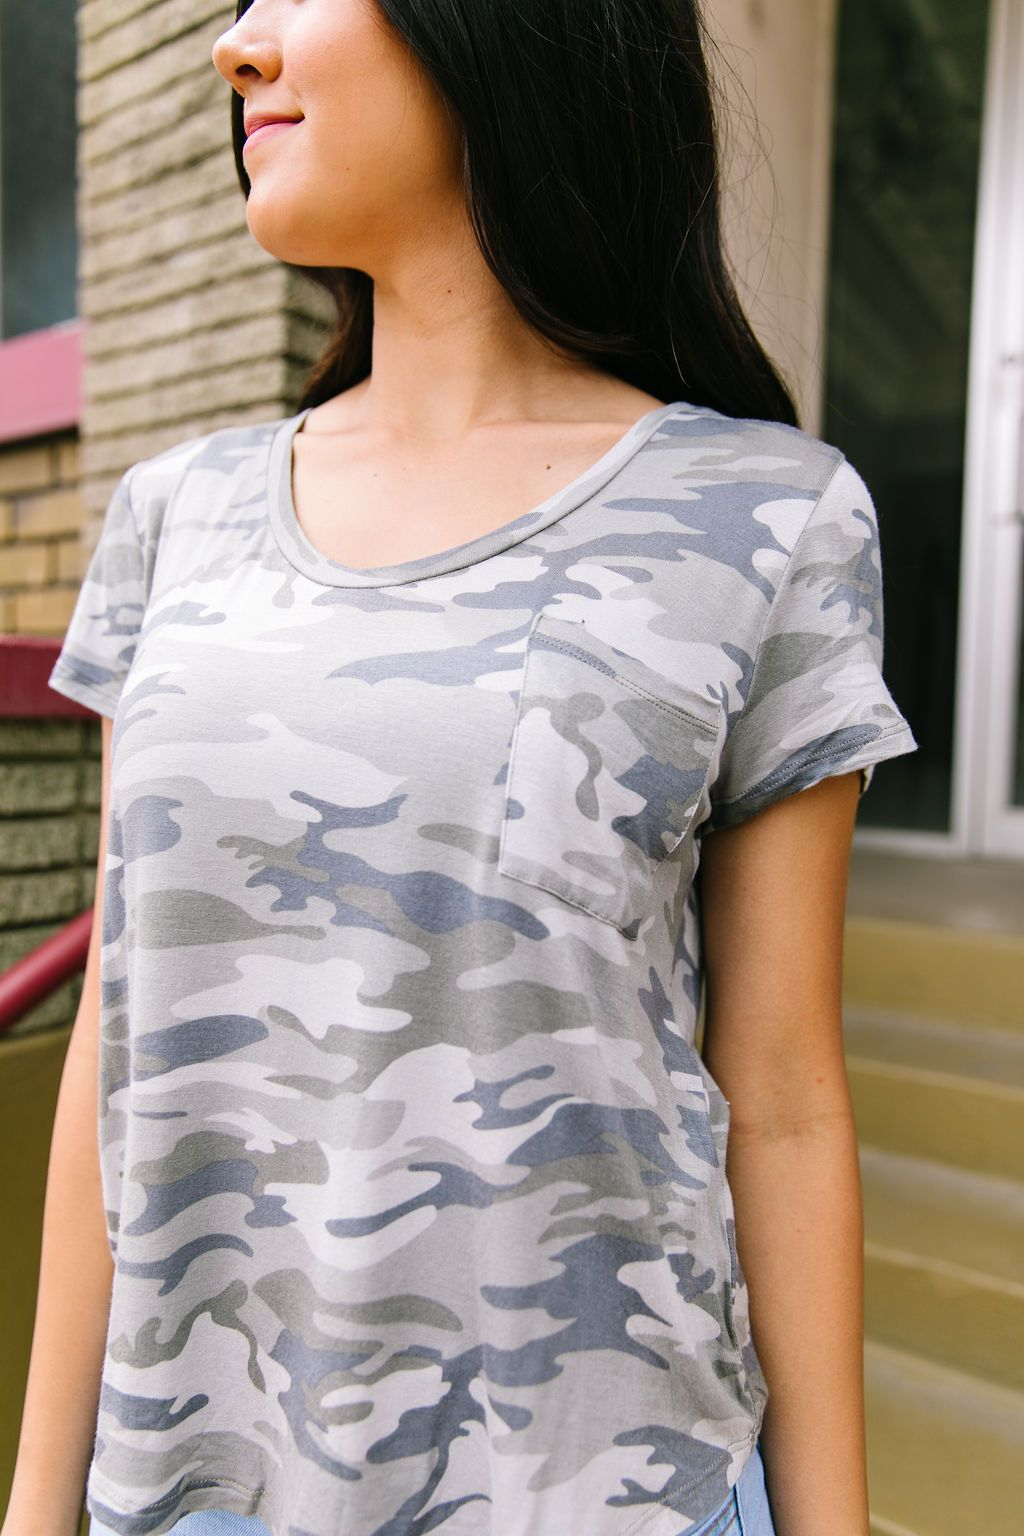 Faded Camo Scoop Neck Tee